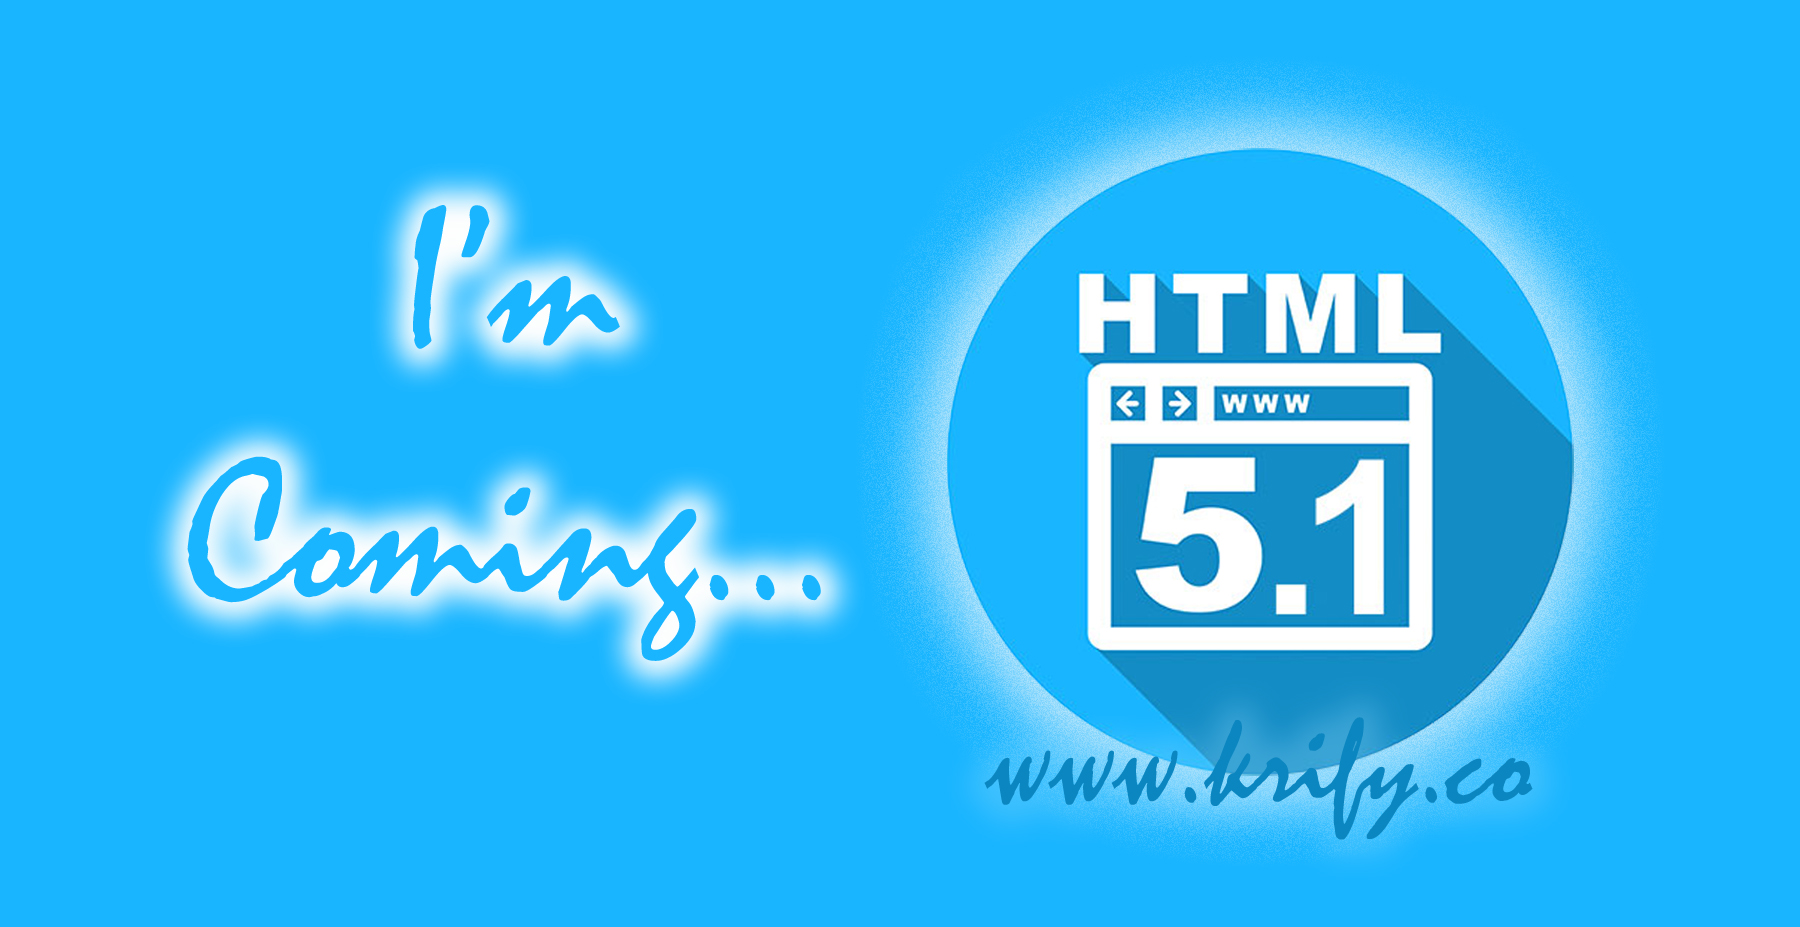 HTML 5.1 Specifications